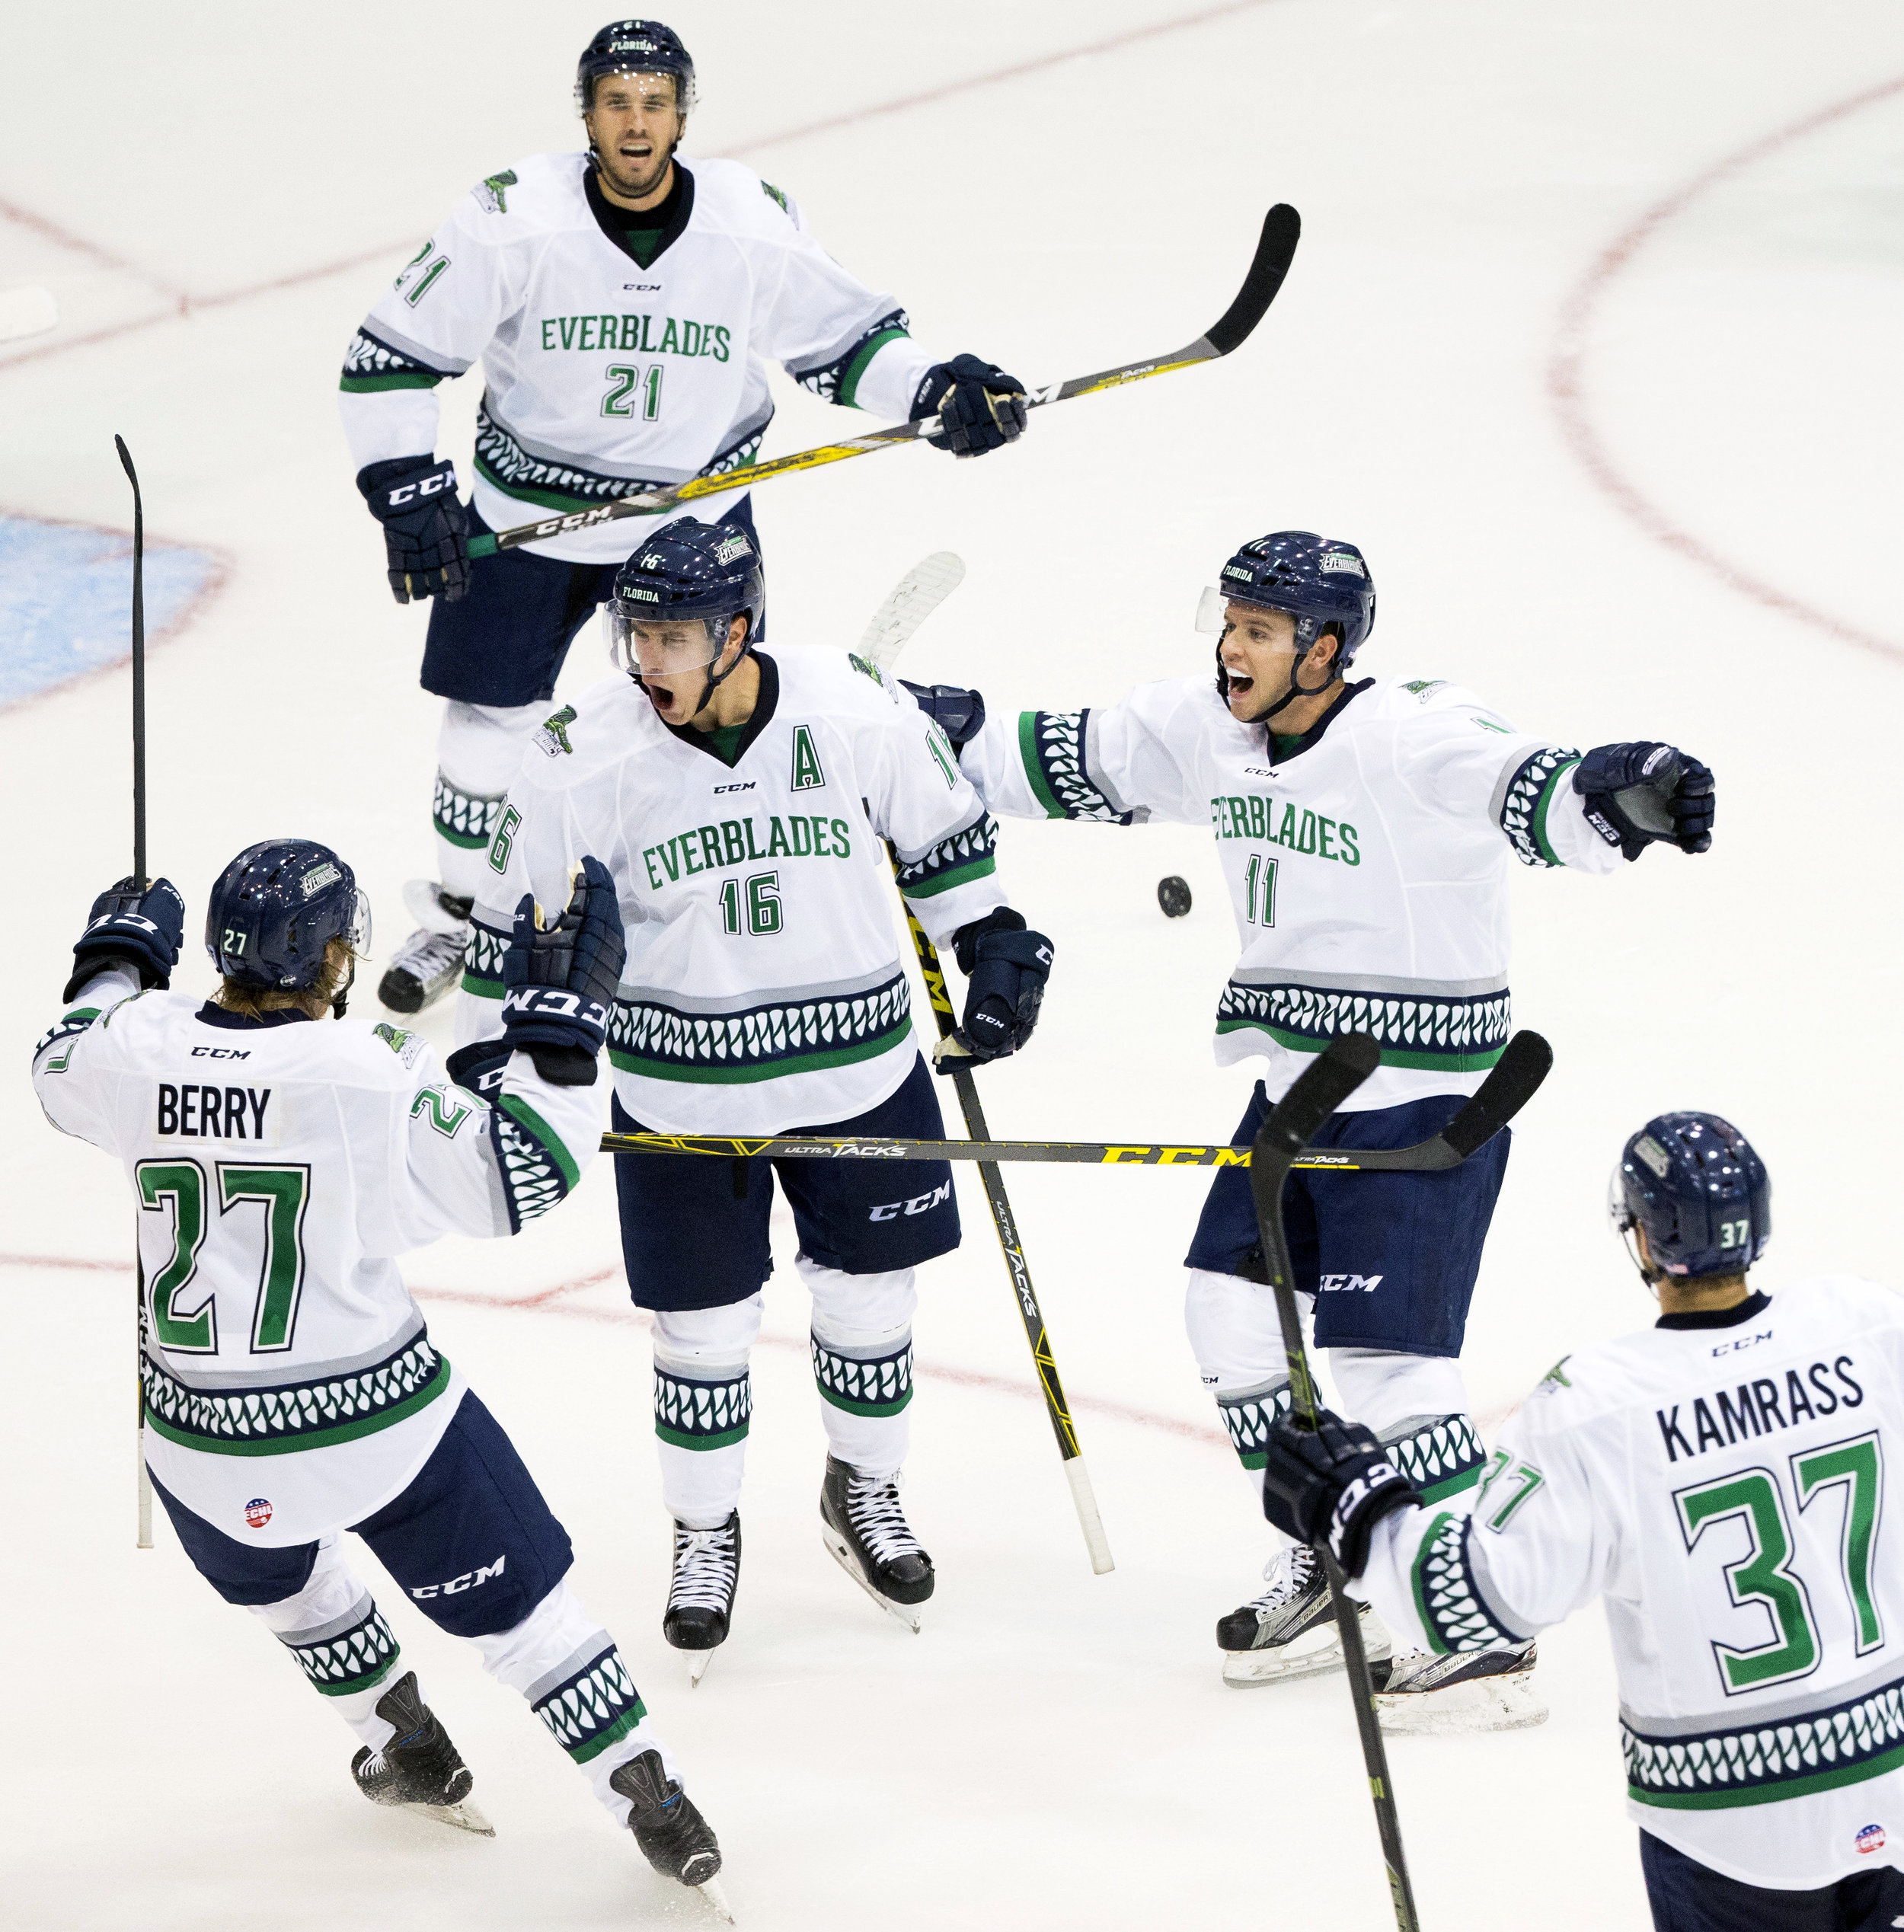 Florida Everblades' players celebrate with Mike Aviani (16) after Aviani scored the game-tying goal with 59 seconds left in the third period of action at Germain Arena Friday, October 14, 2016 in Estero, Fla. The Everblades would score all of their three goals in the final three minutes of regulation defeating the Greenville Swamp Rabbits 3-2 in their first game of the season.